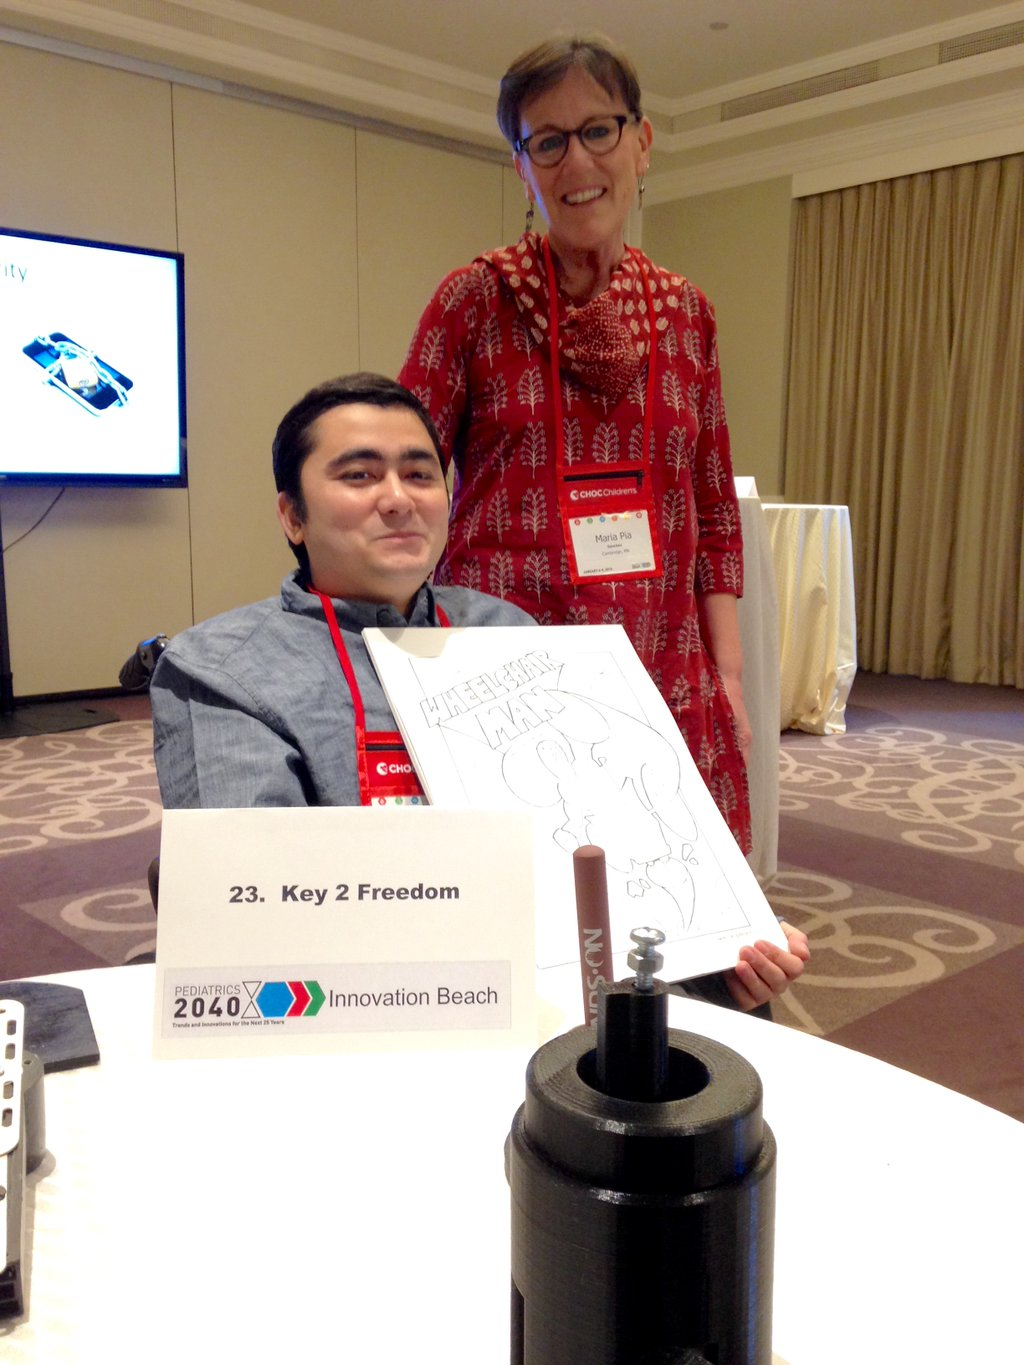 Mohammad Sayed presents his Universal Arm at Peds2040.